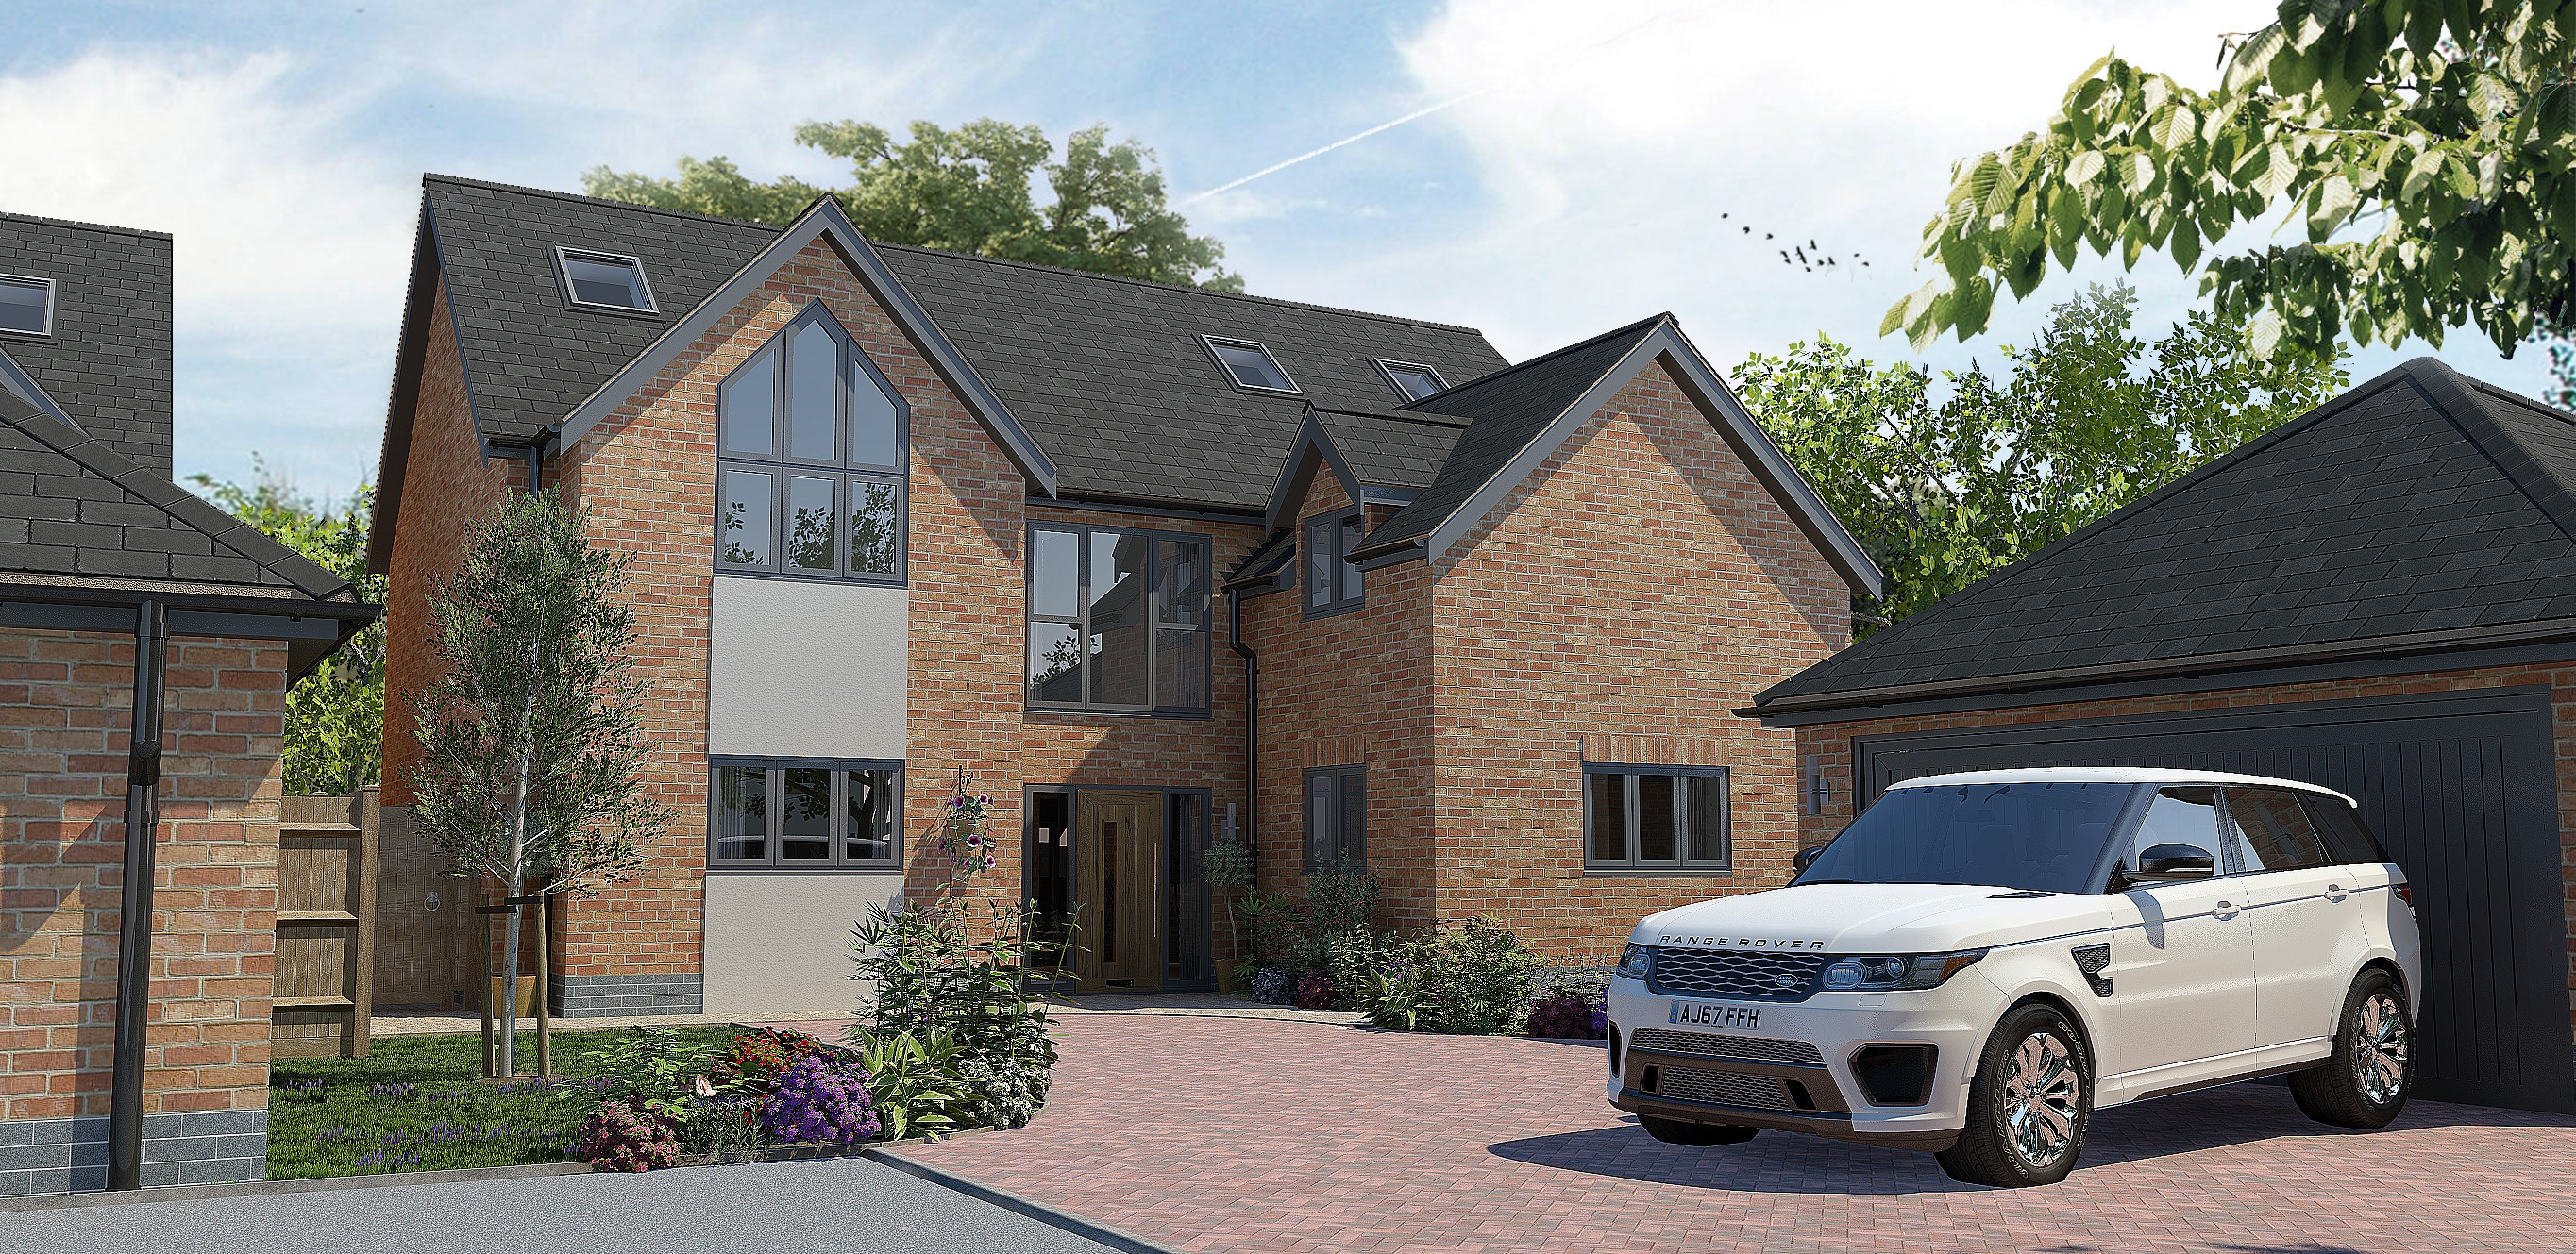 Malc Flinn - Stapleford Development Plot 3 .jpg